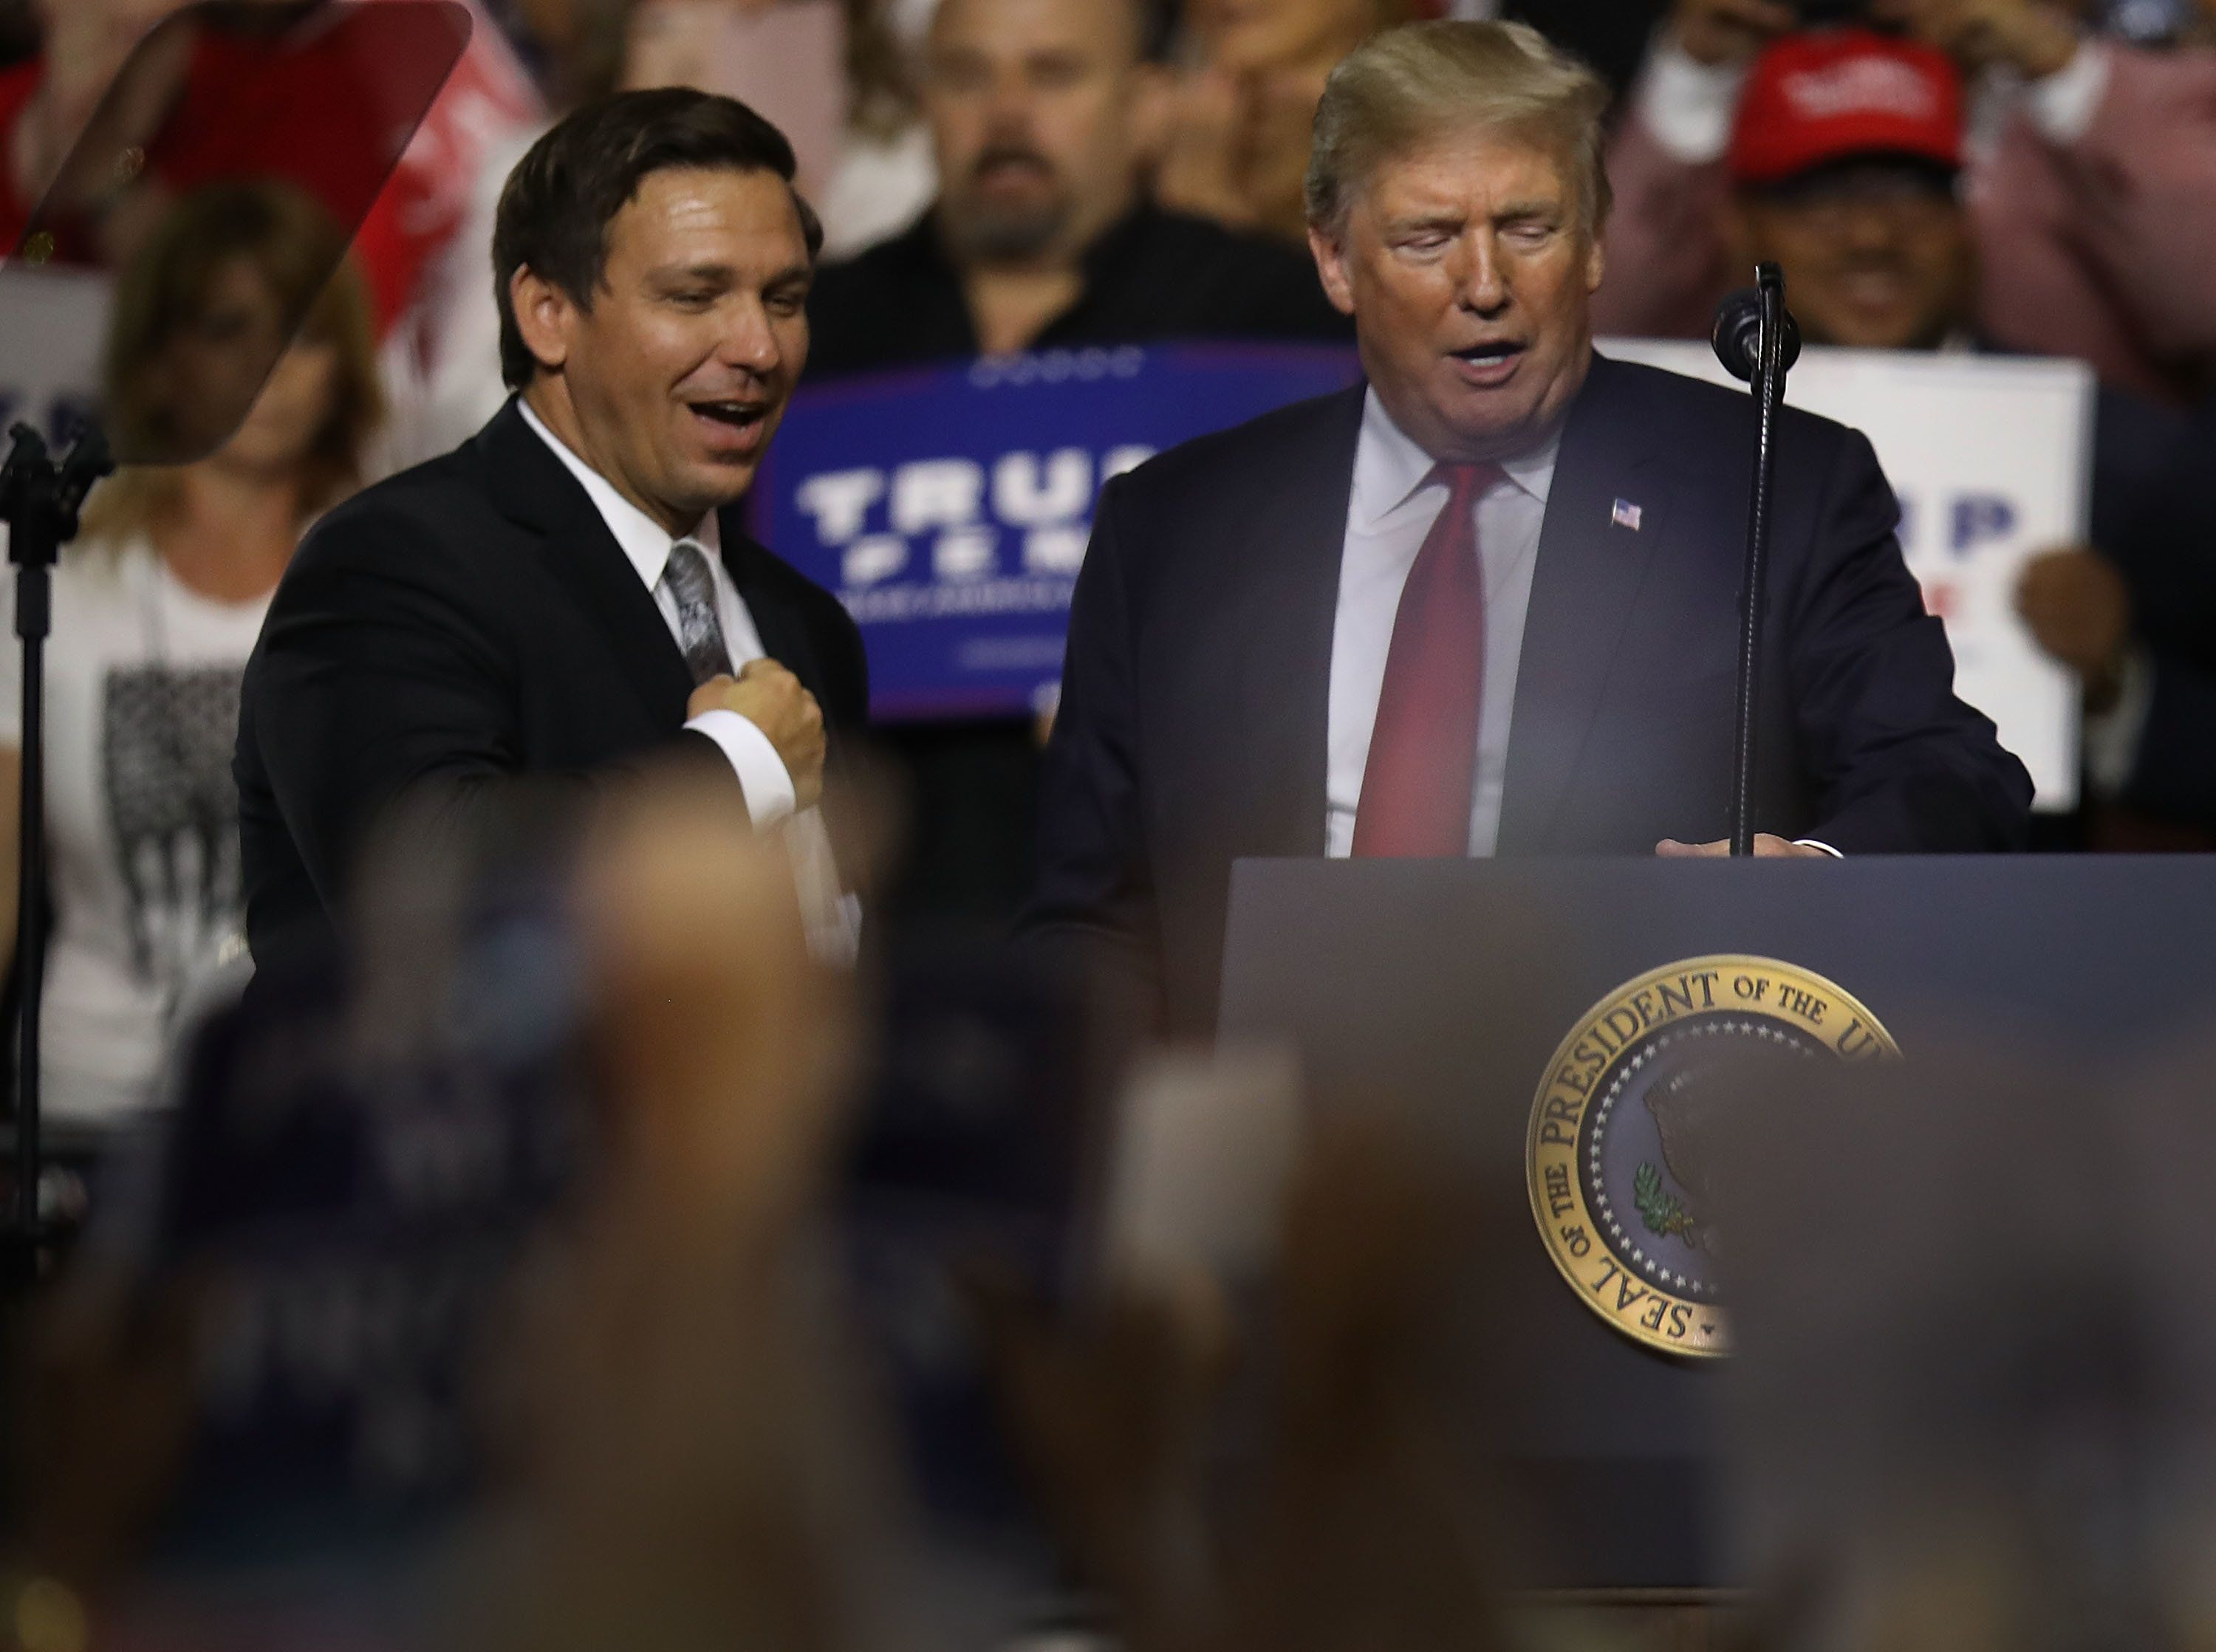 TAMPA, FL - JULY 31:  President Donald Trump stands with GOP Florida gubernatorial candidate Ron DeSantis during the president's Make America Great Again Rally at the Florida State Fair Grounds Expo Hall on July 31, 2018 in Tampa, Florida.  Before the rally, President Trump visited the Tampa Bay Technical High School for a roundtable discussion on Workforce Development in Tampa.  (Photo by Joe Raedle/Getty Images)